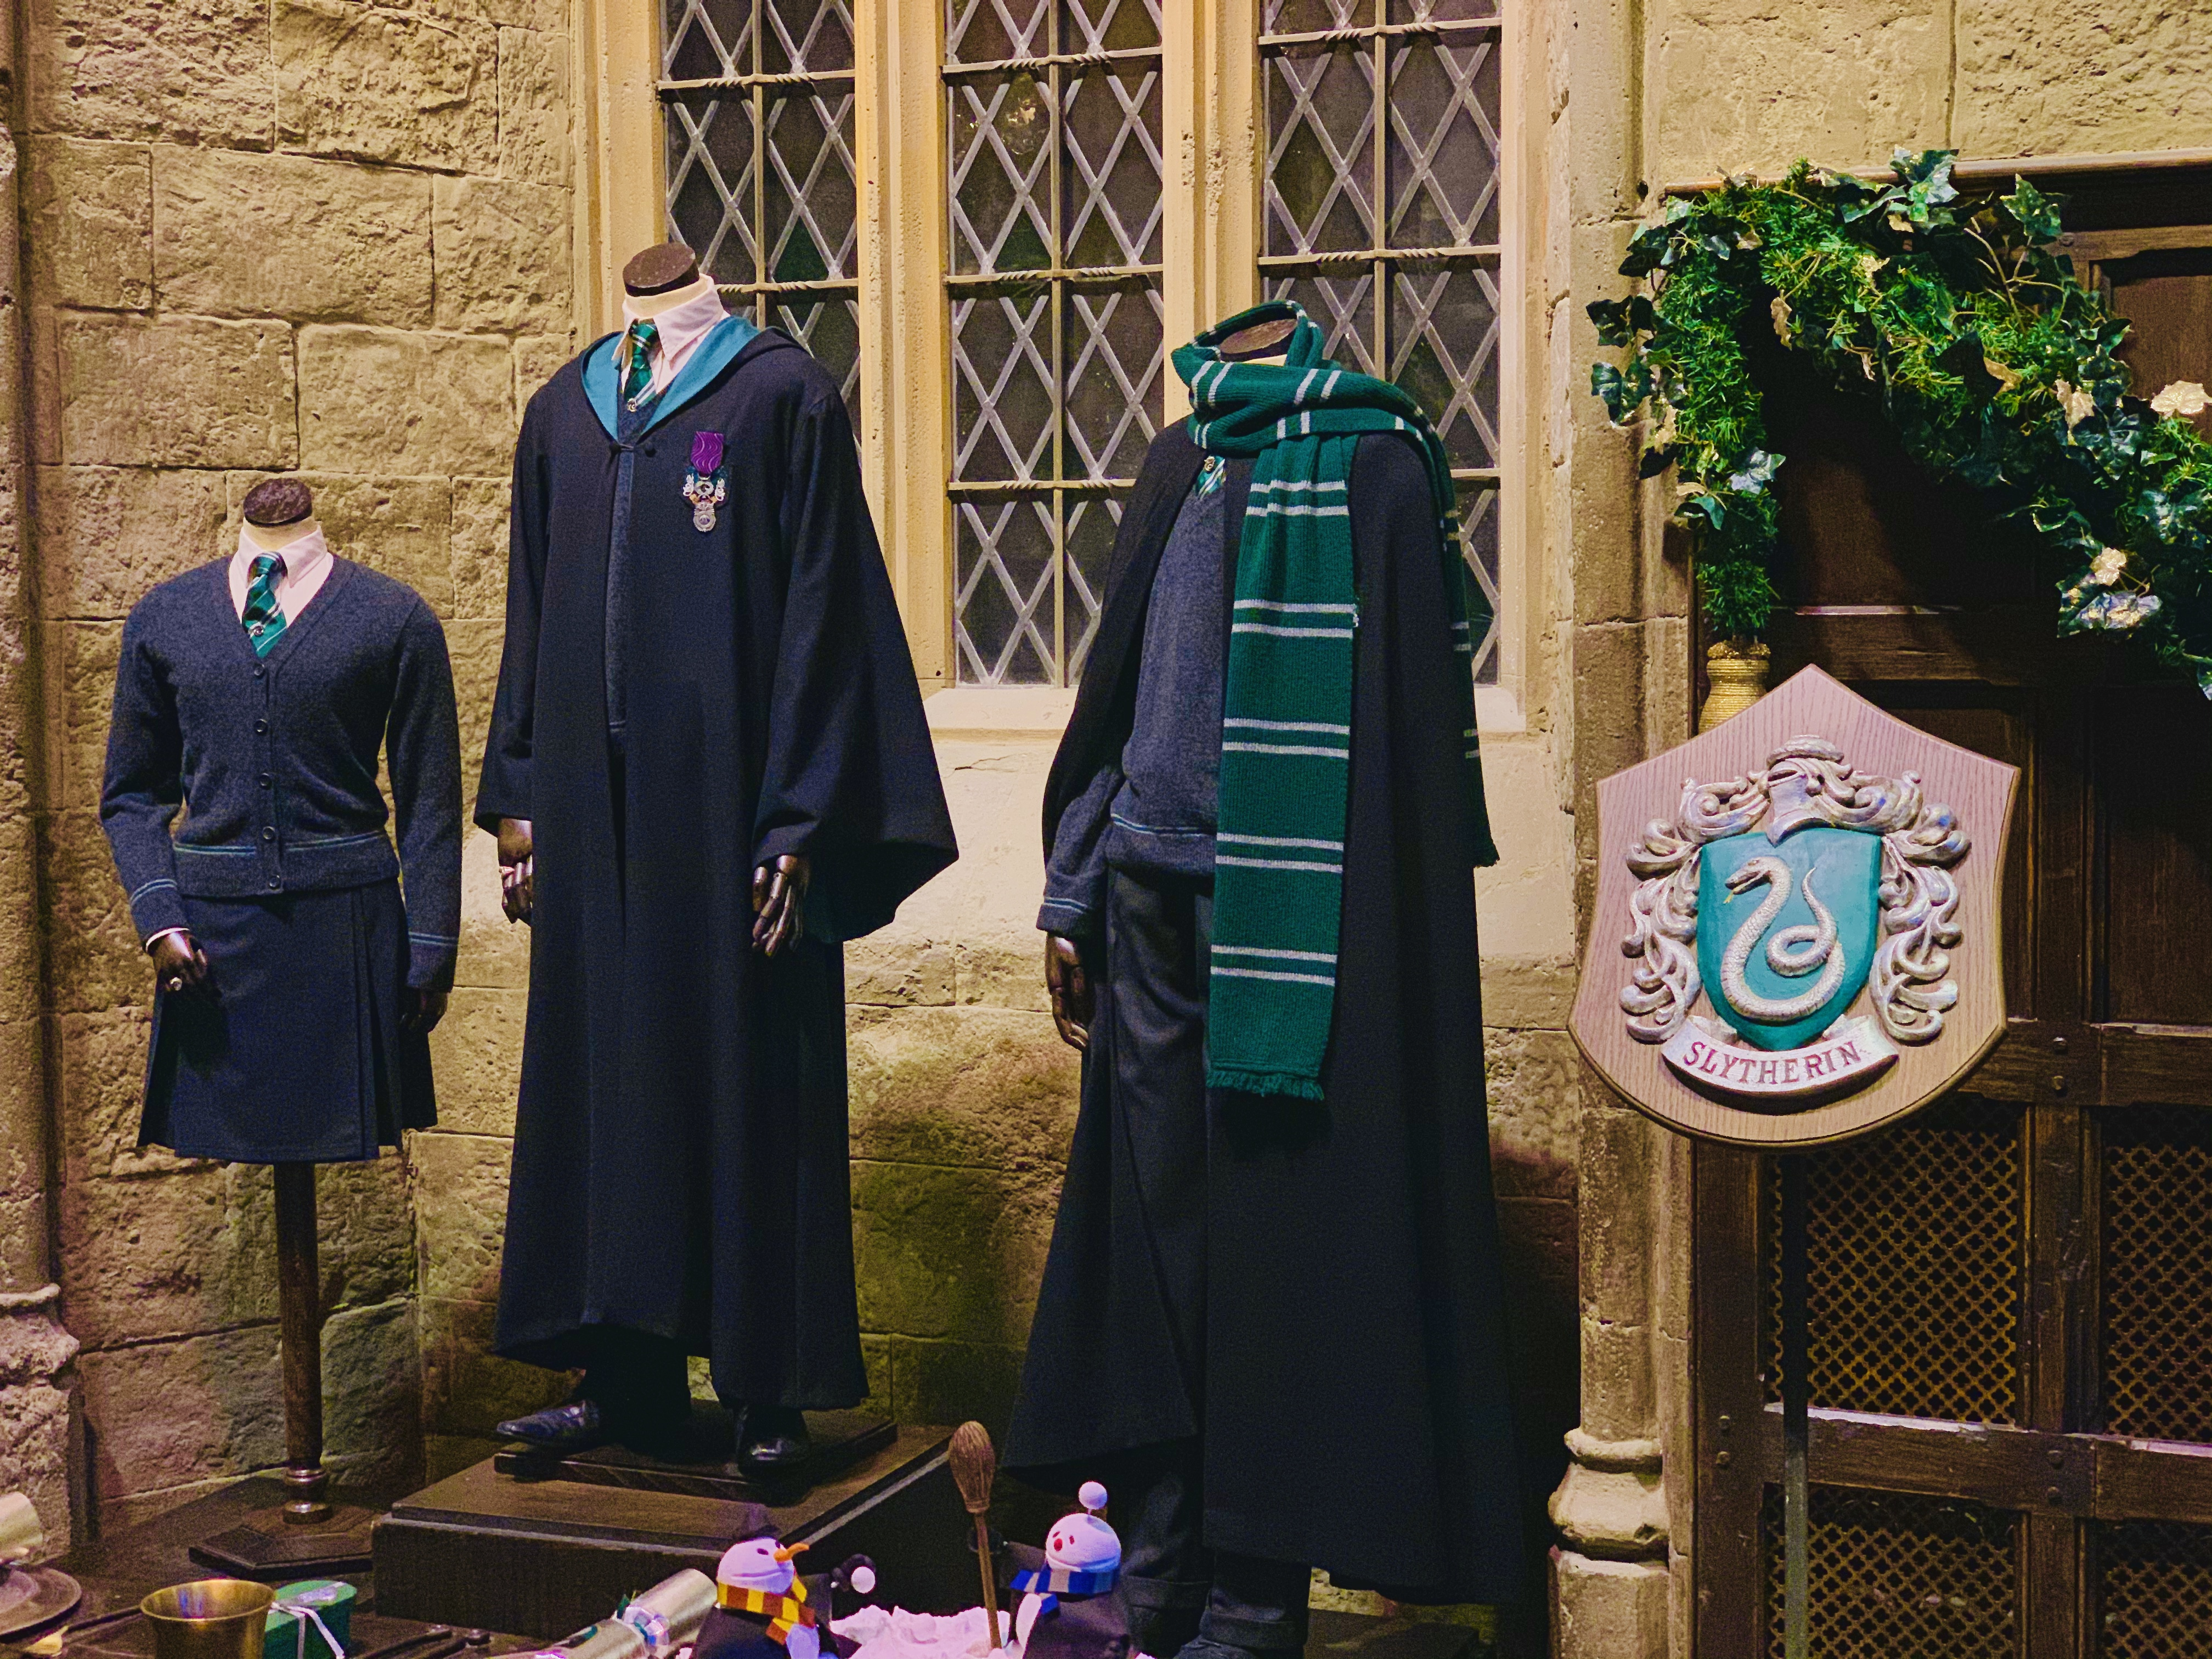 slytherin crest and school uniform